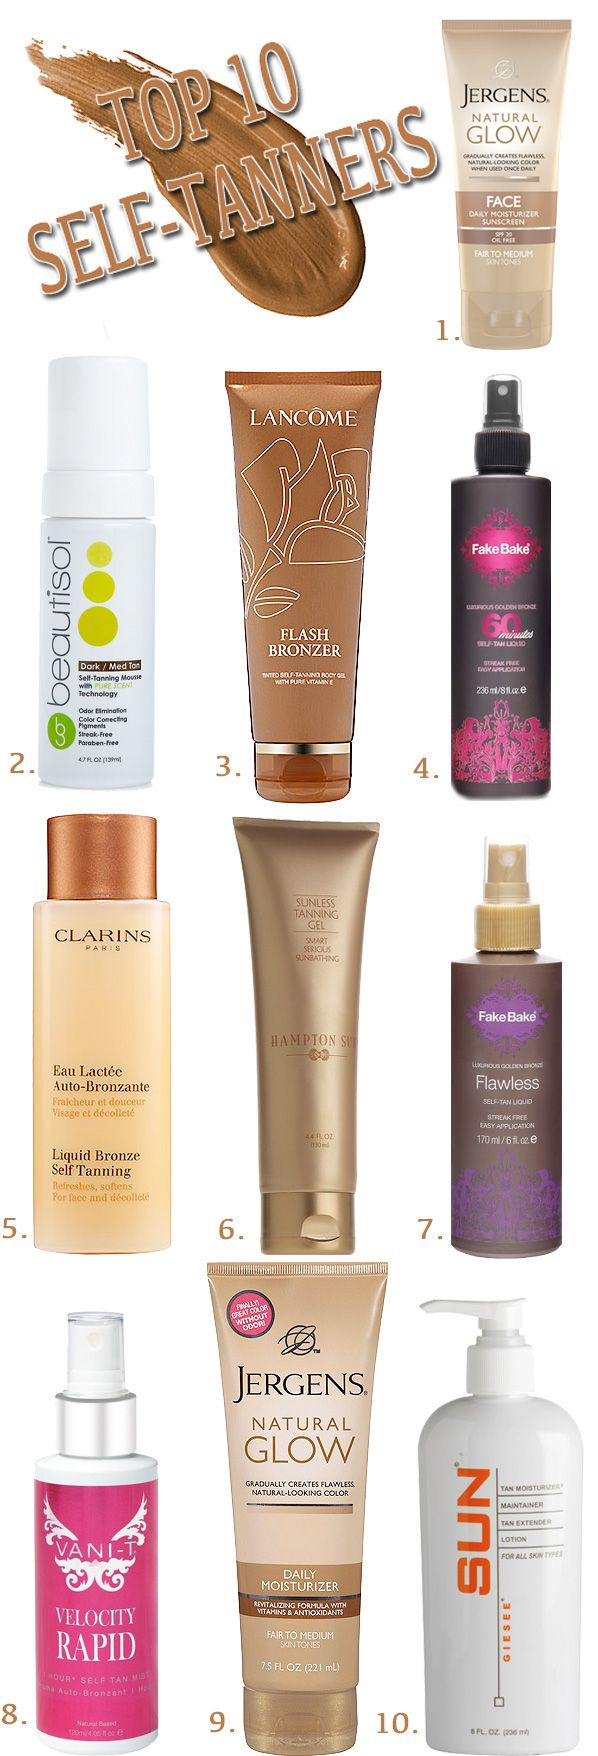 The 10 Best Self Tanners from Beautiful Makeup Search